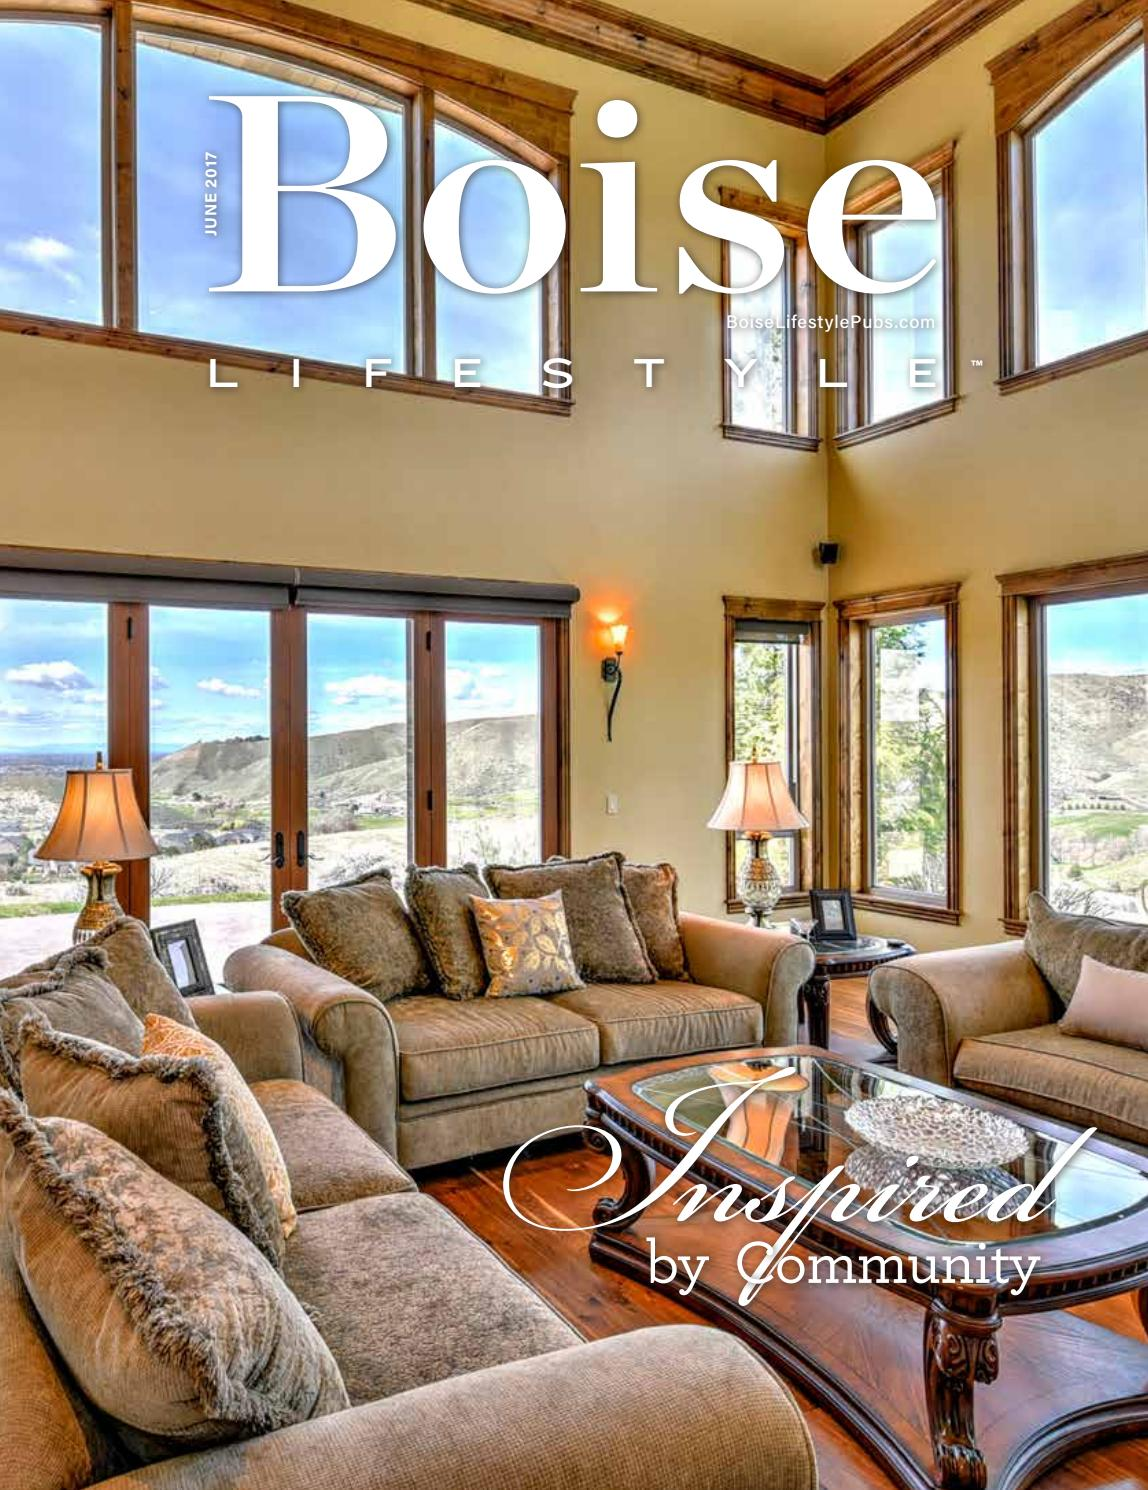 Boise June 2017 by Lifestyle Publications - issuu